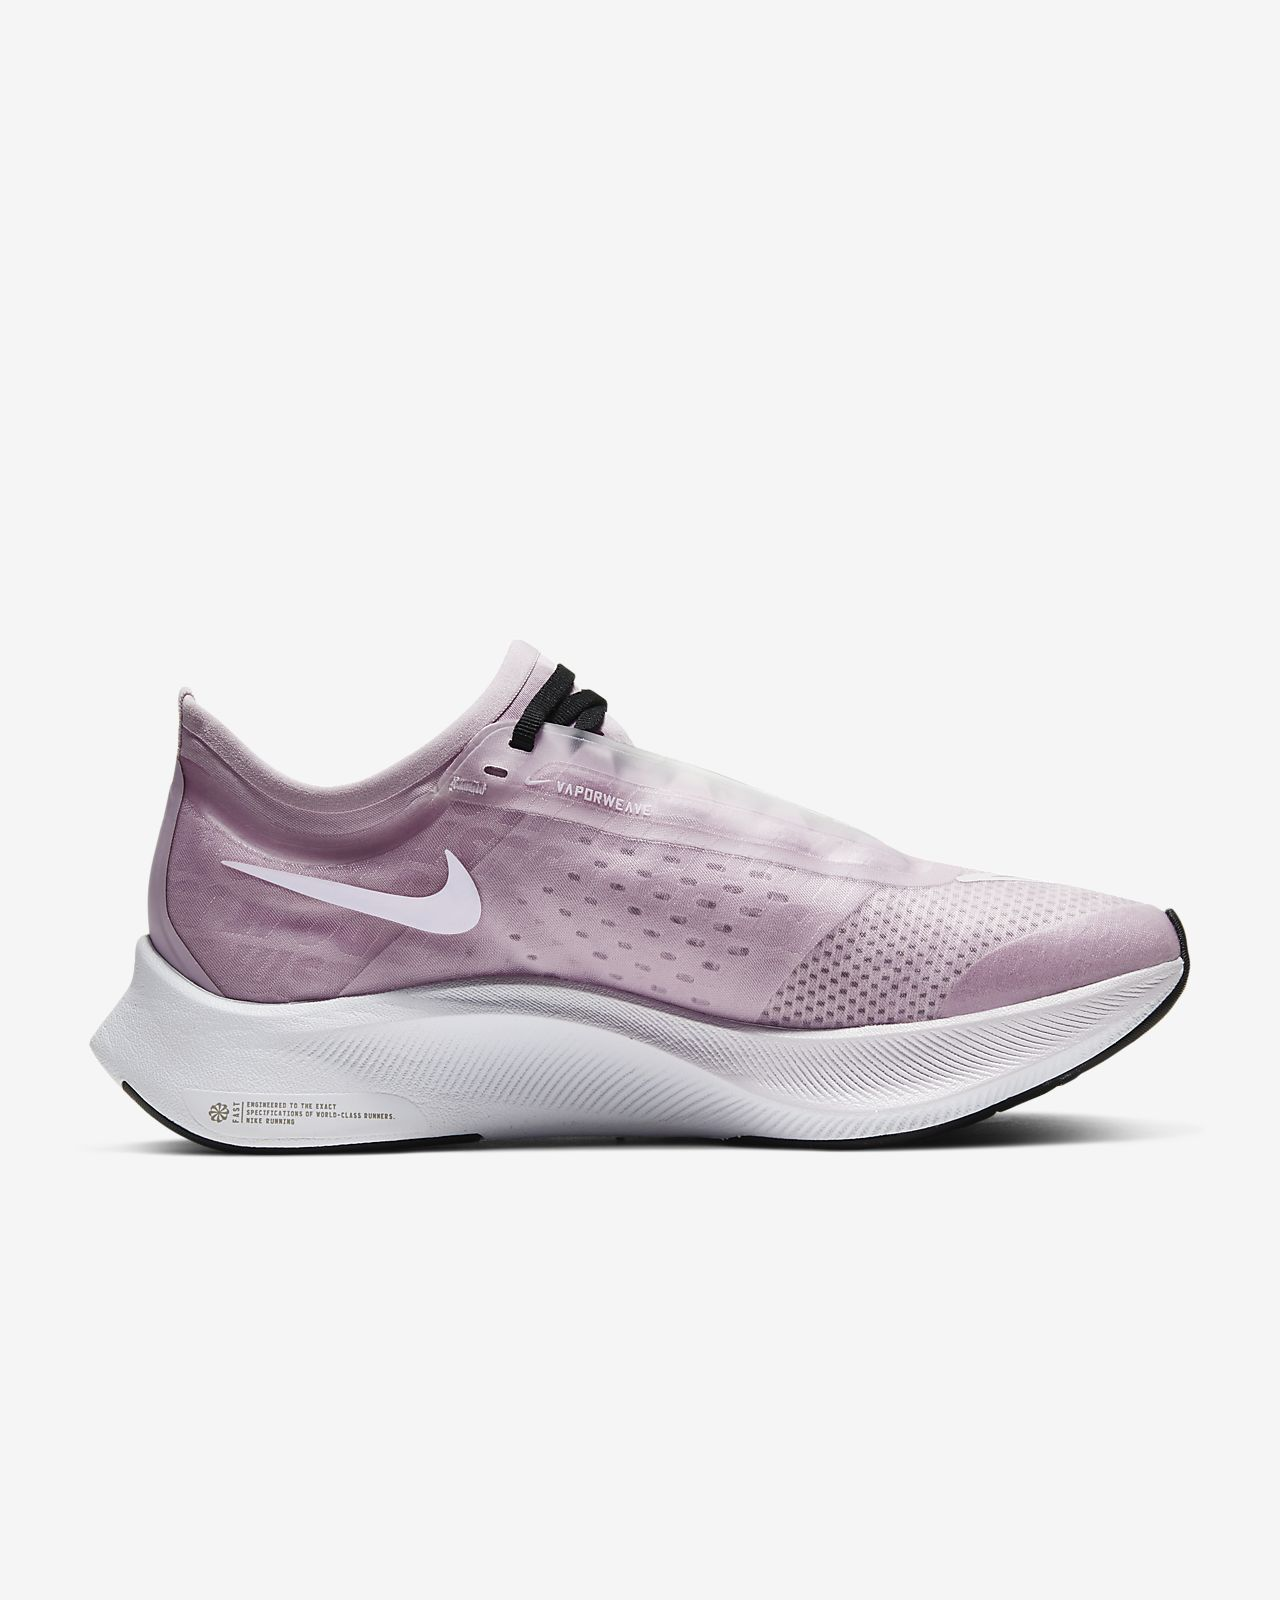 The Nike Zoom Fly 3 Set To Debut On July 11th